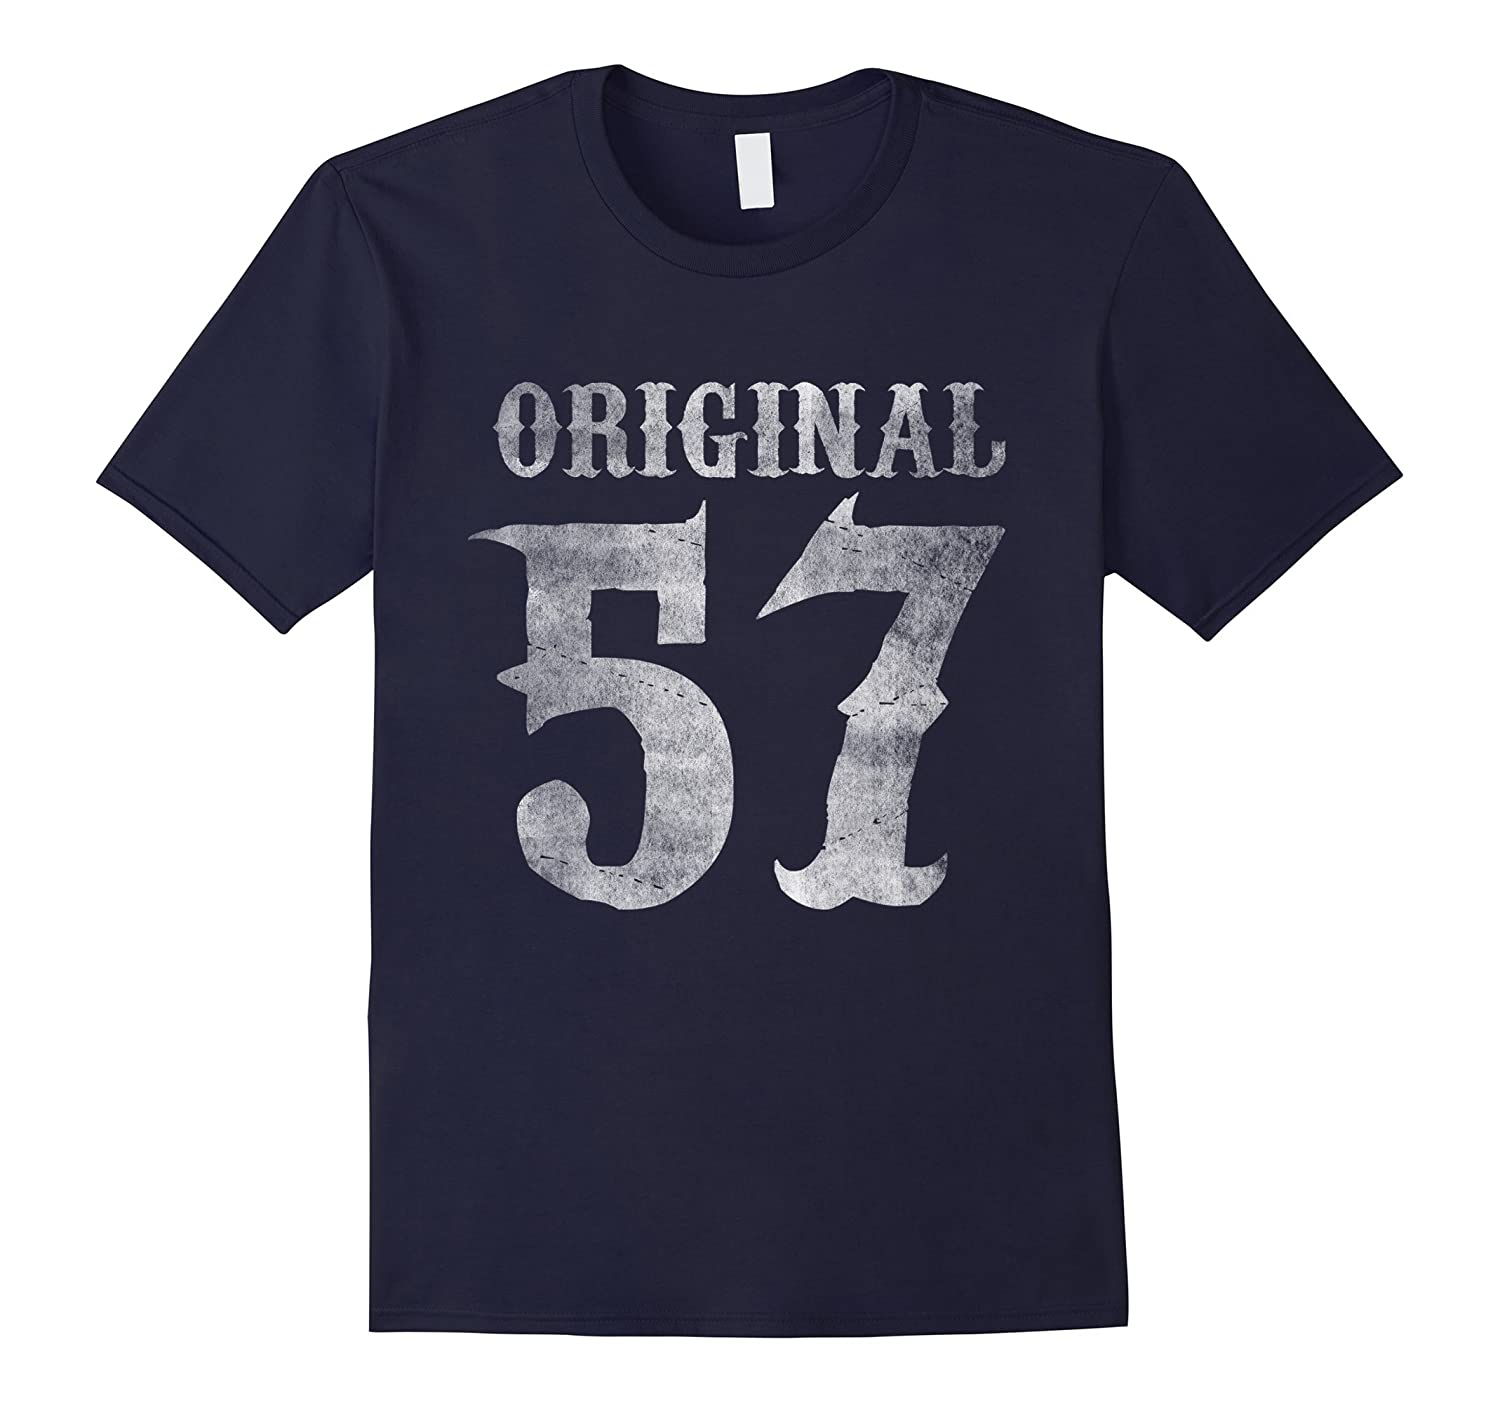 1957 Birthday Vintage T-shirt 57th Birthday Men Women kids-CD